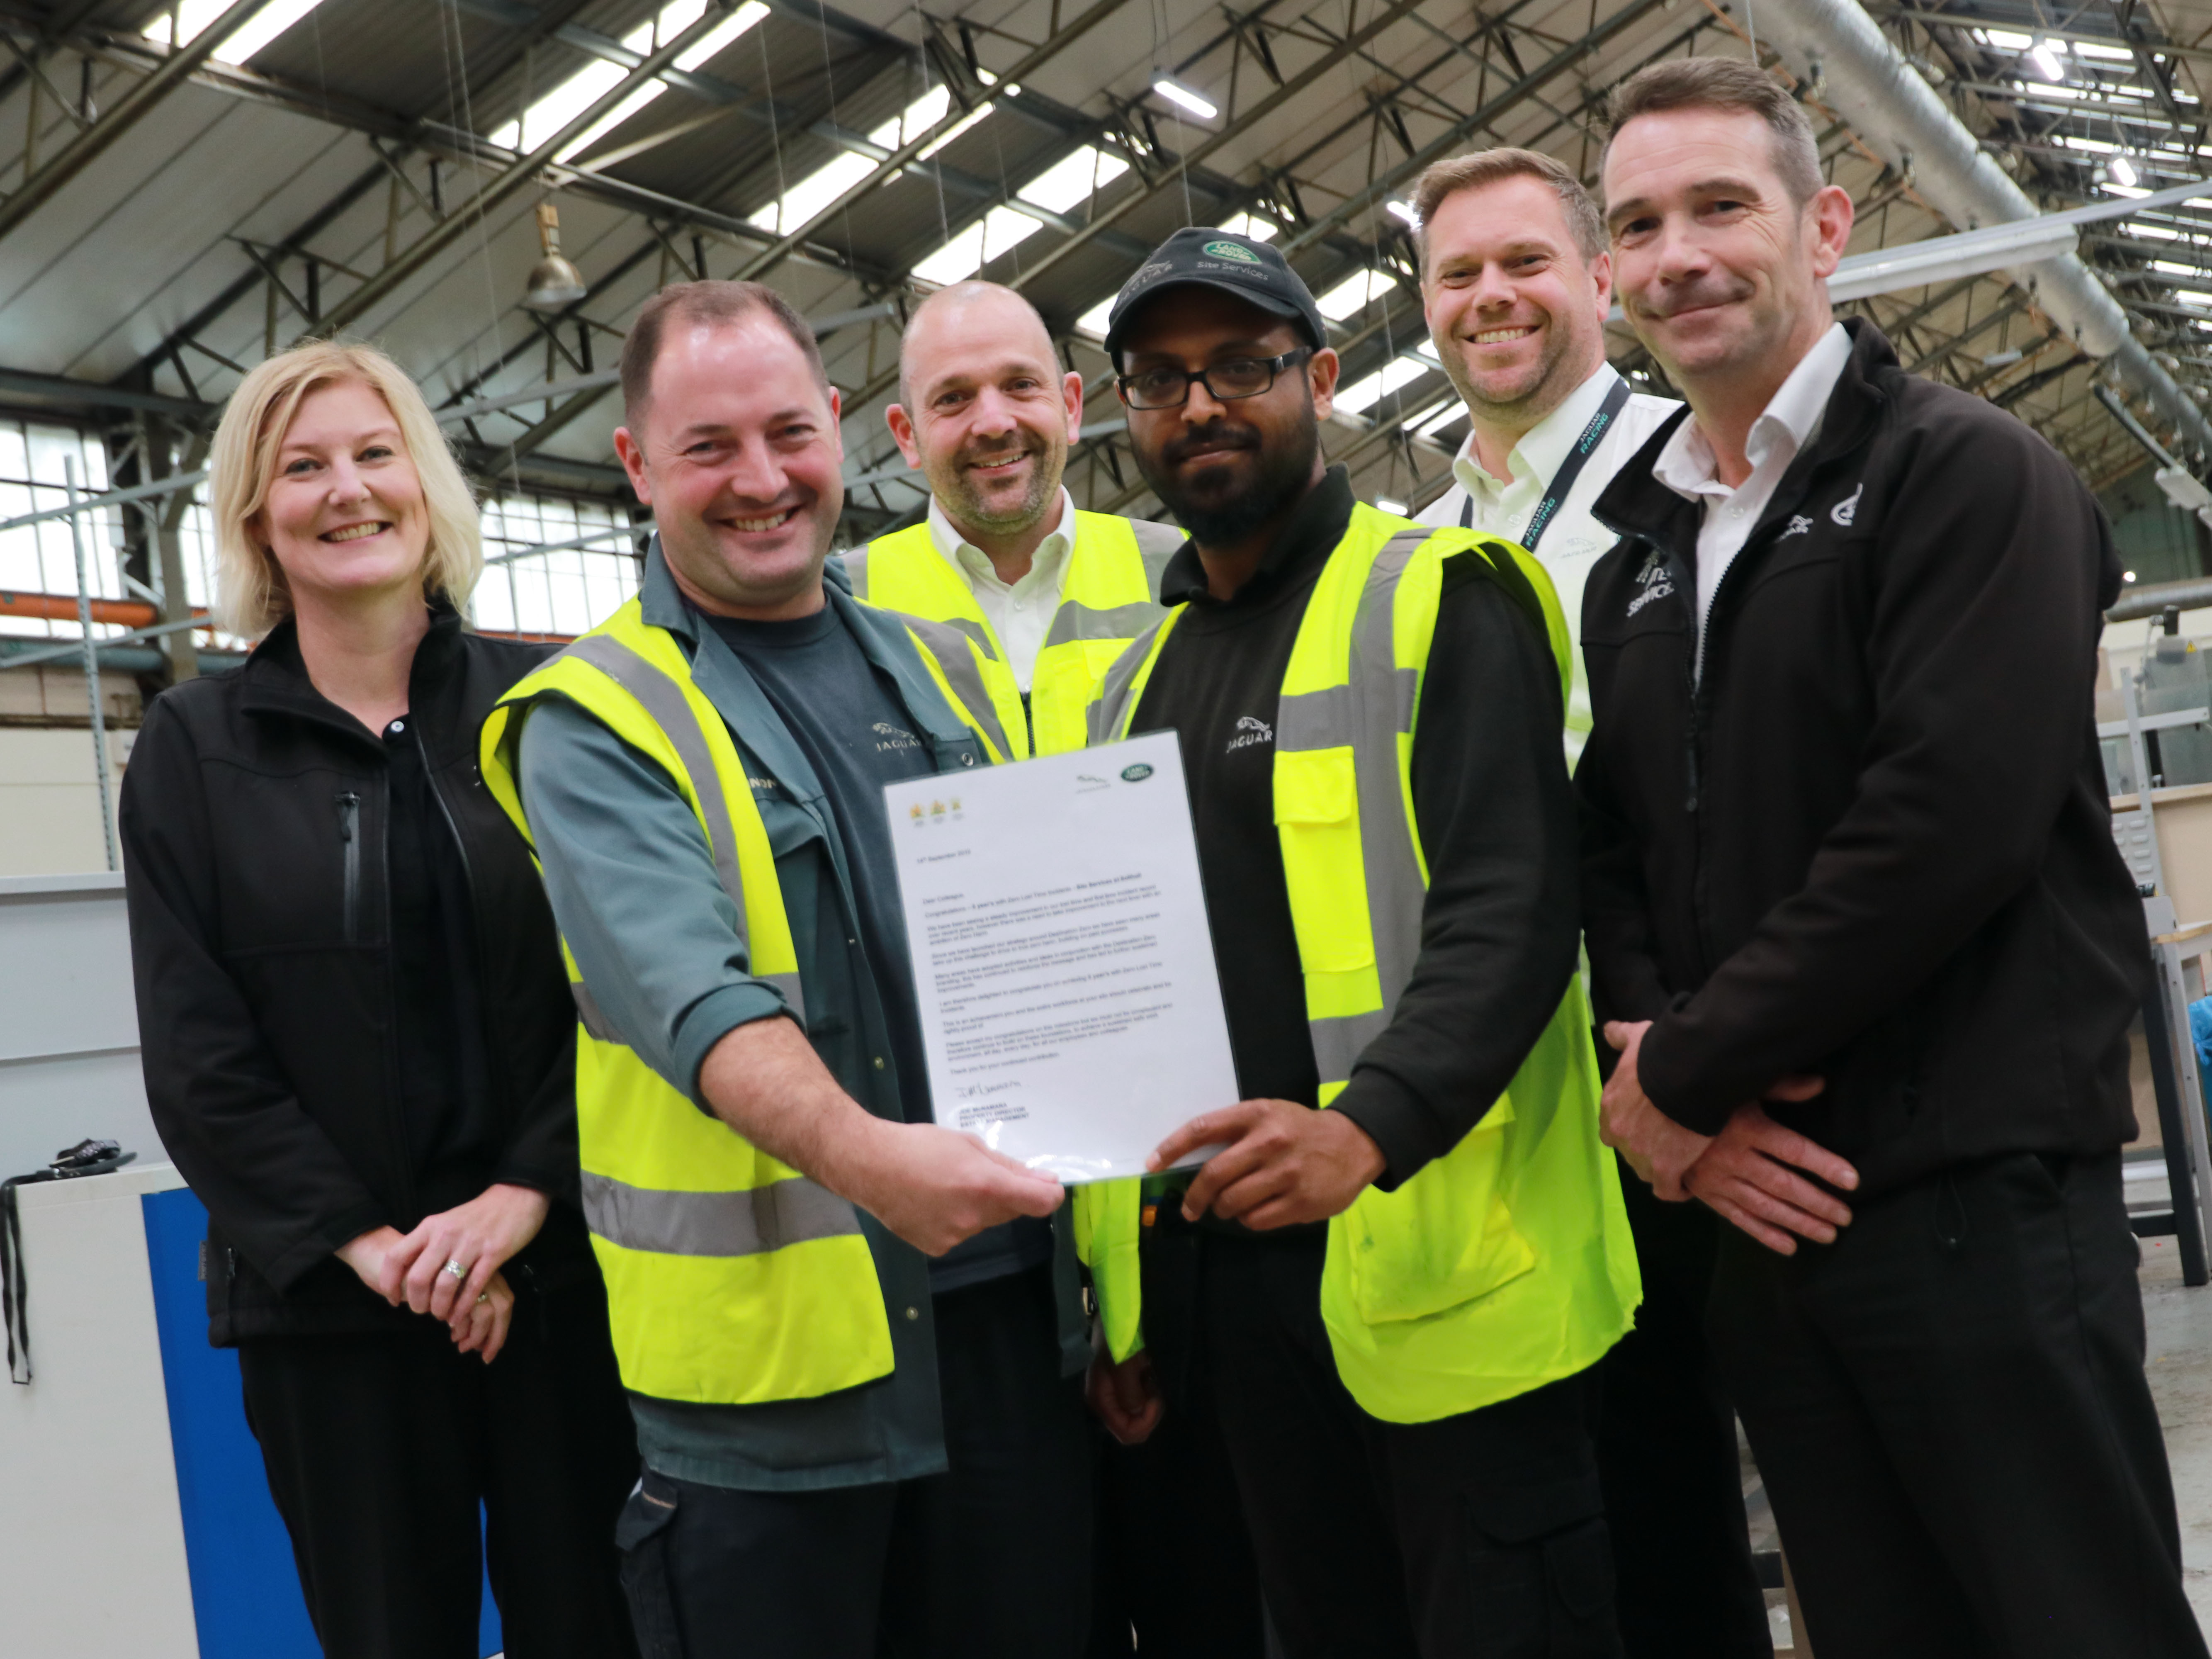 CELEBRATING FIVE YEARS OF ZERO ACCIDENTS FOR SOLIHULL'S ESTATES MANAGEMENT